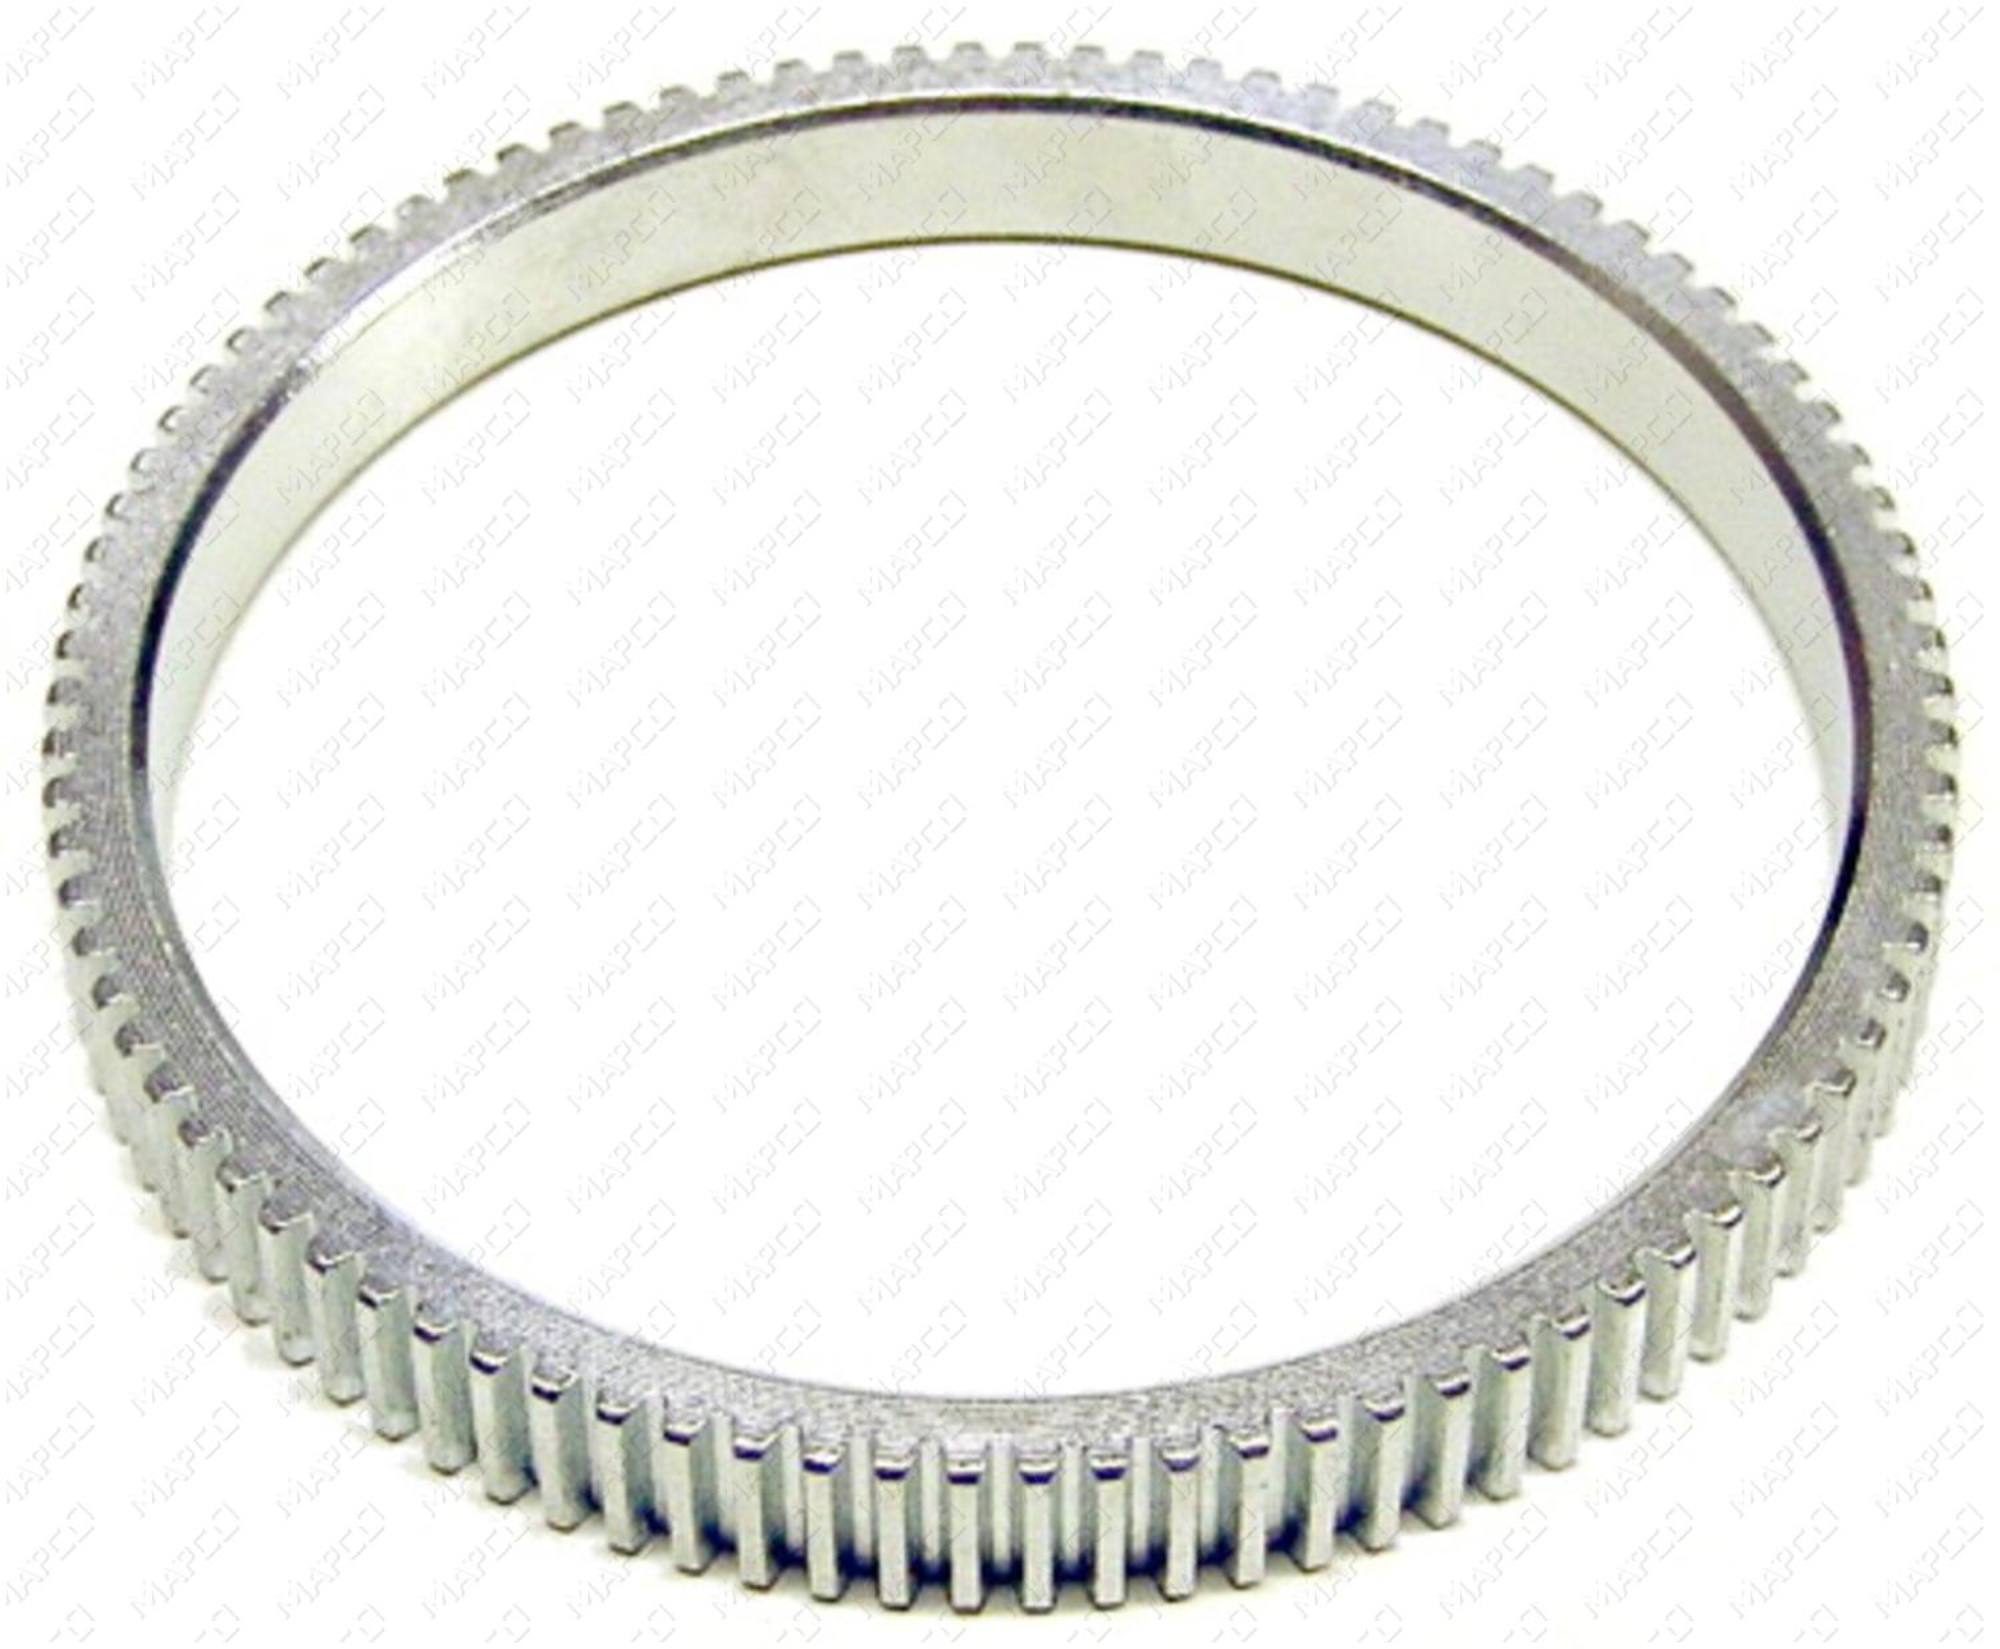 MAPCO 76001 ABS Ring Vorderachse beidseitig